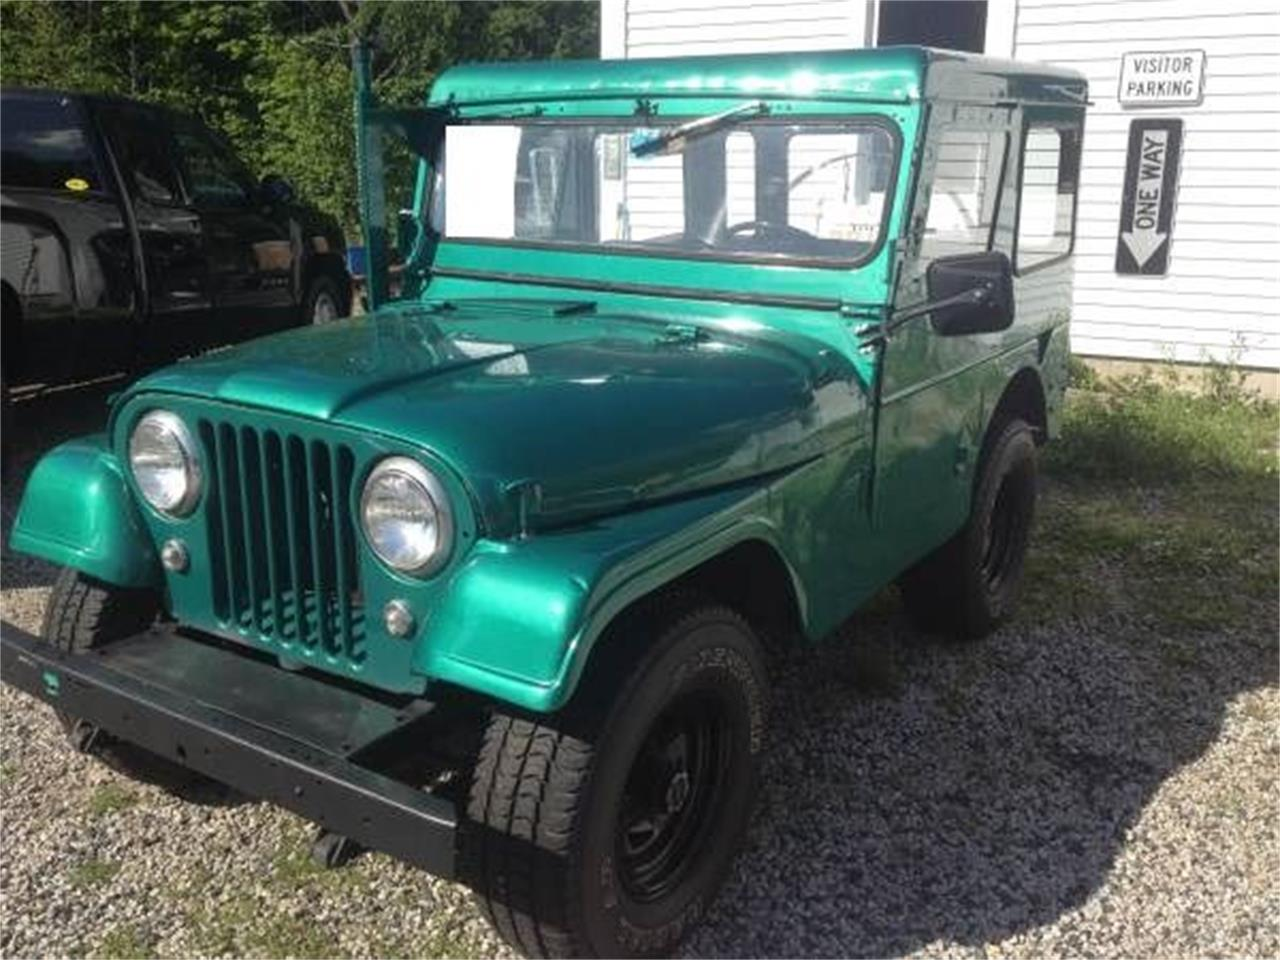 Large Picture of '62 CJ7 located in Michigan - $9,995.00 Offered by Classic Car Deals - O0Q8